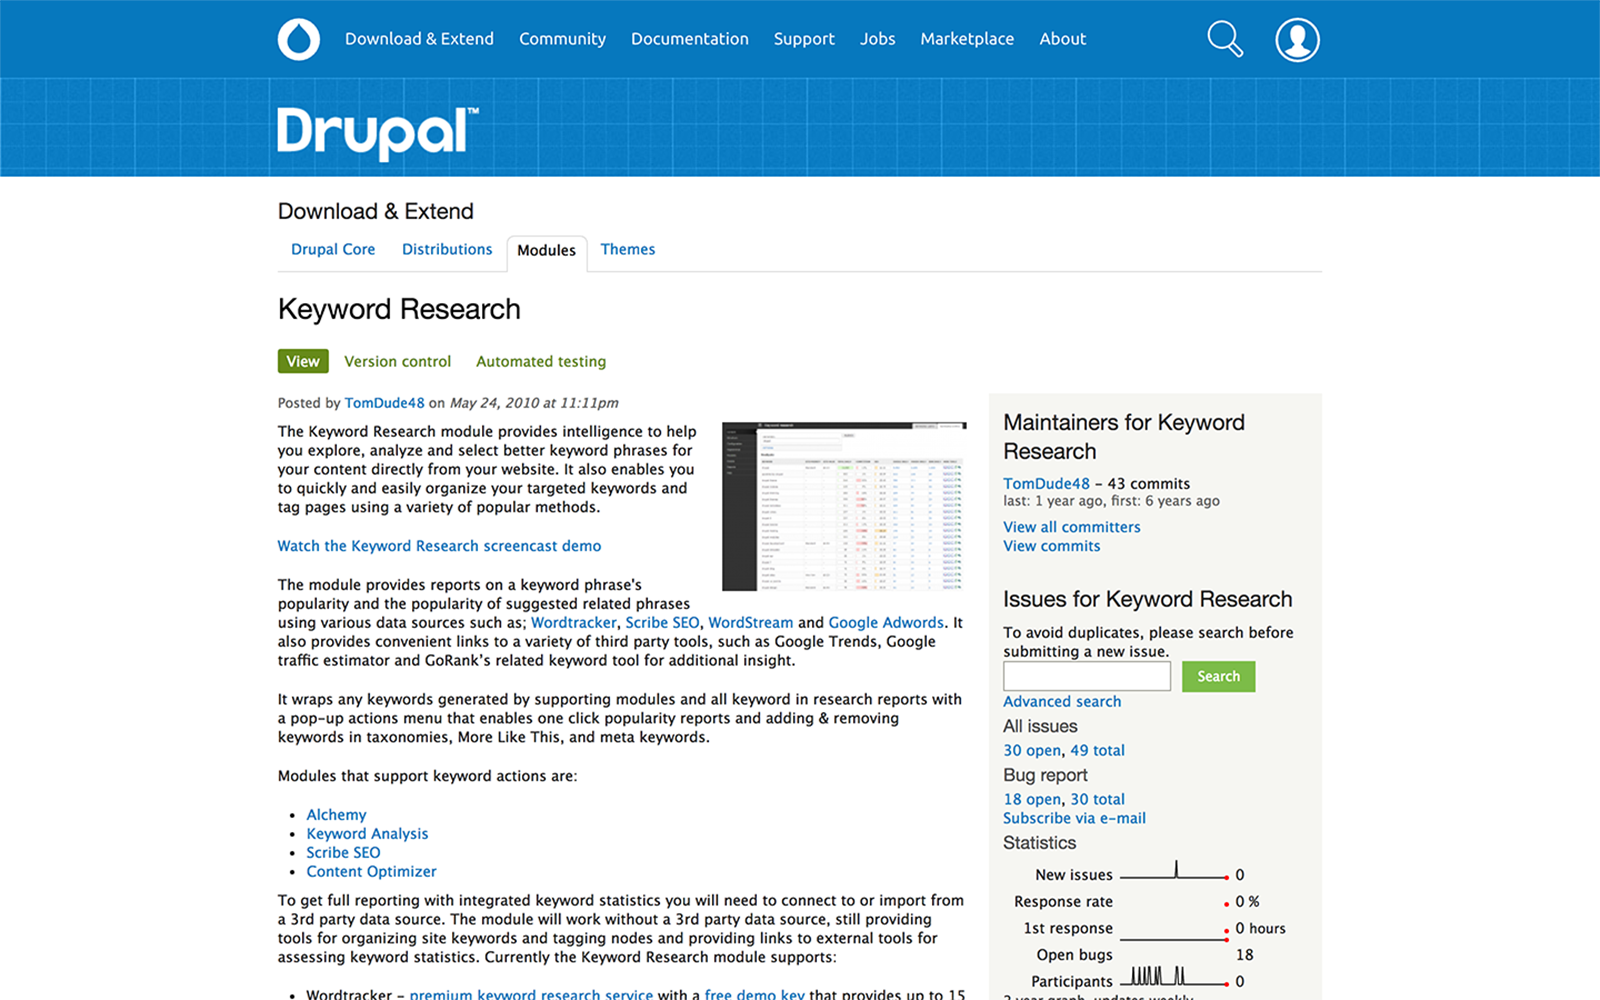 Drupal keyword research module screenshot.